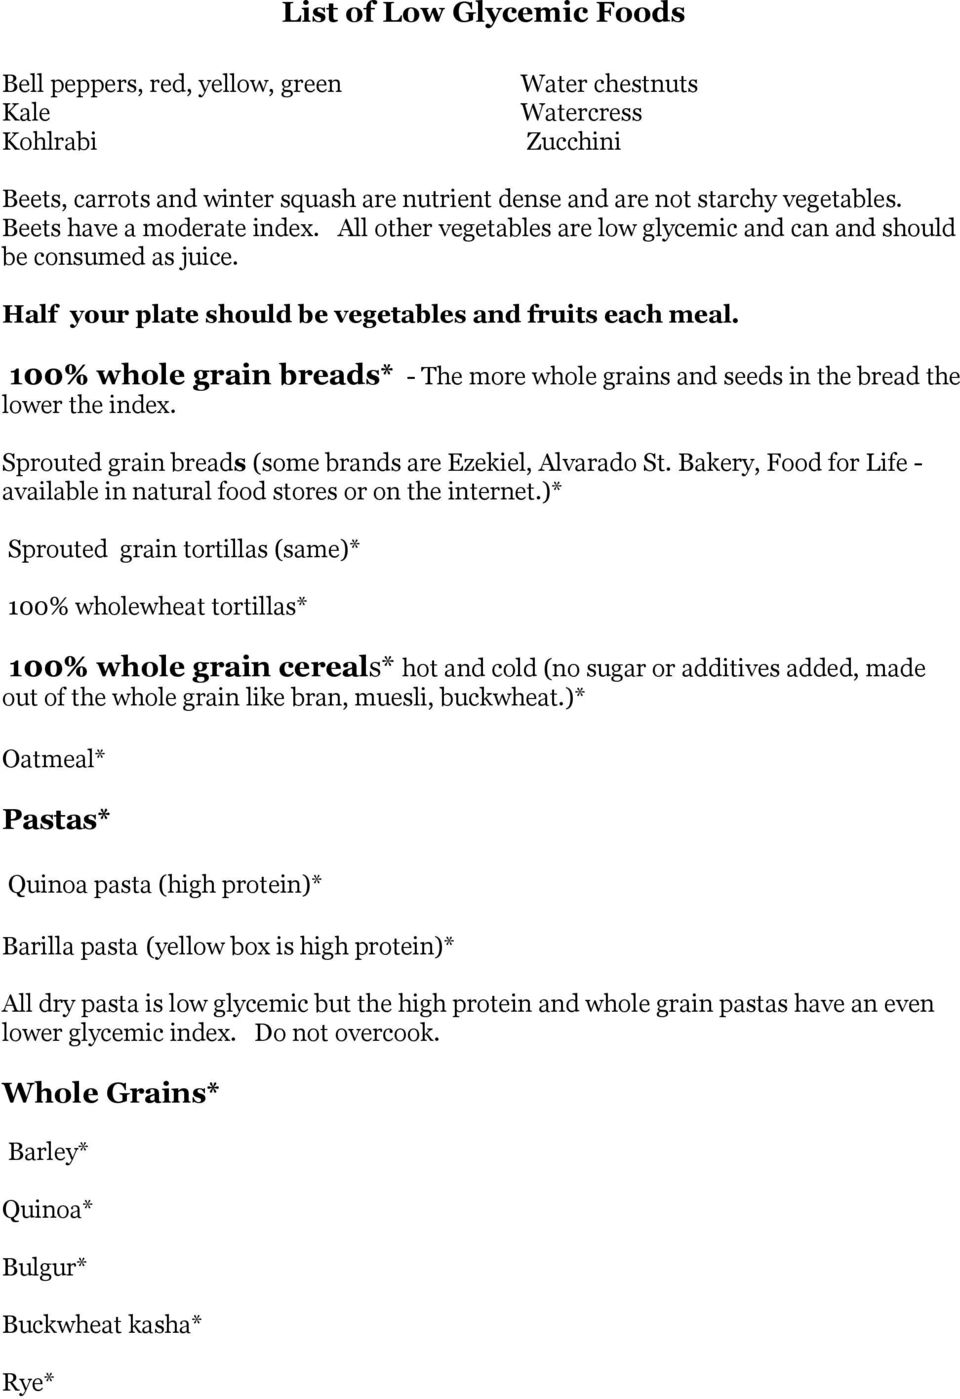 100% whole grain breads* - The more whole grains and seeds in the bread the lower the index. Sprouted grain breads (some brands are Ezekiel, Alvarado St.